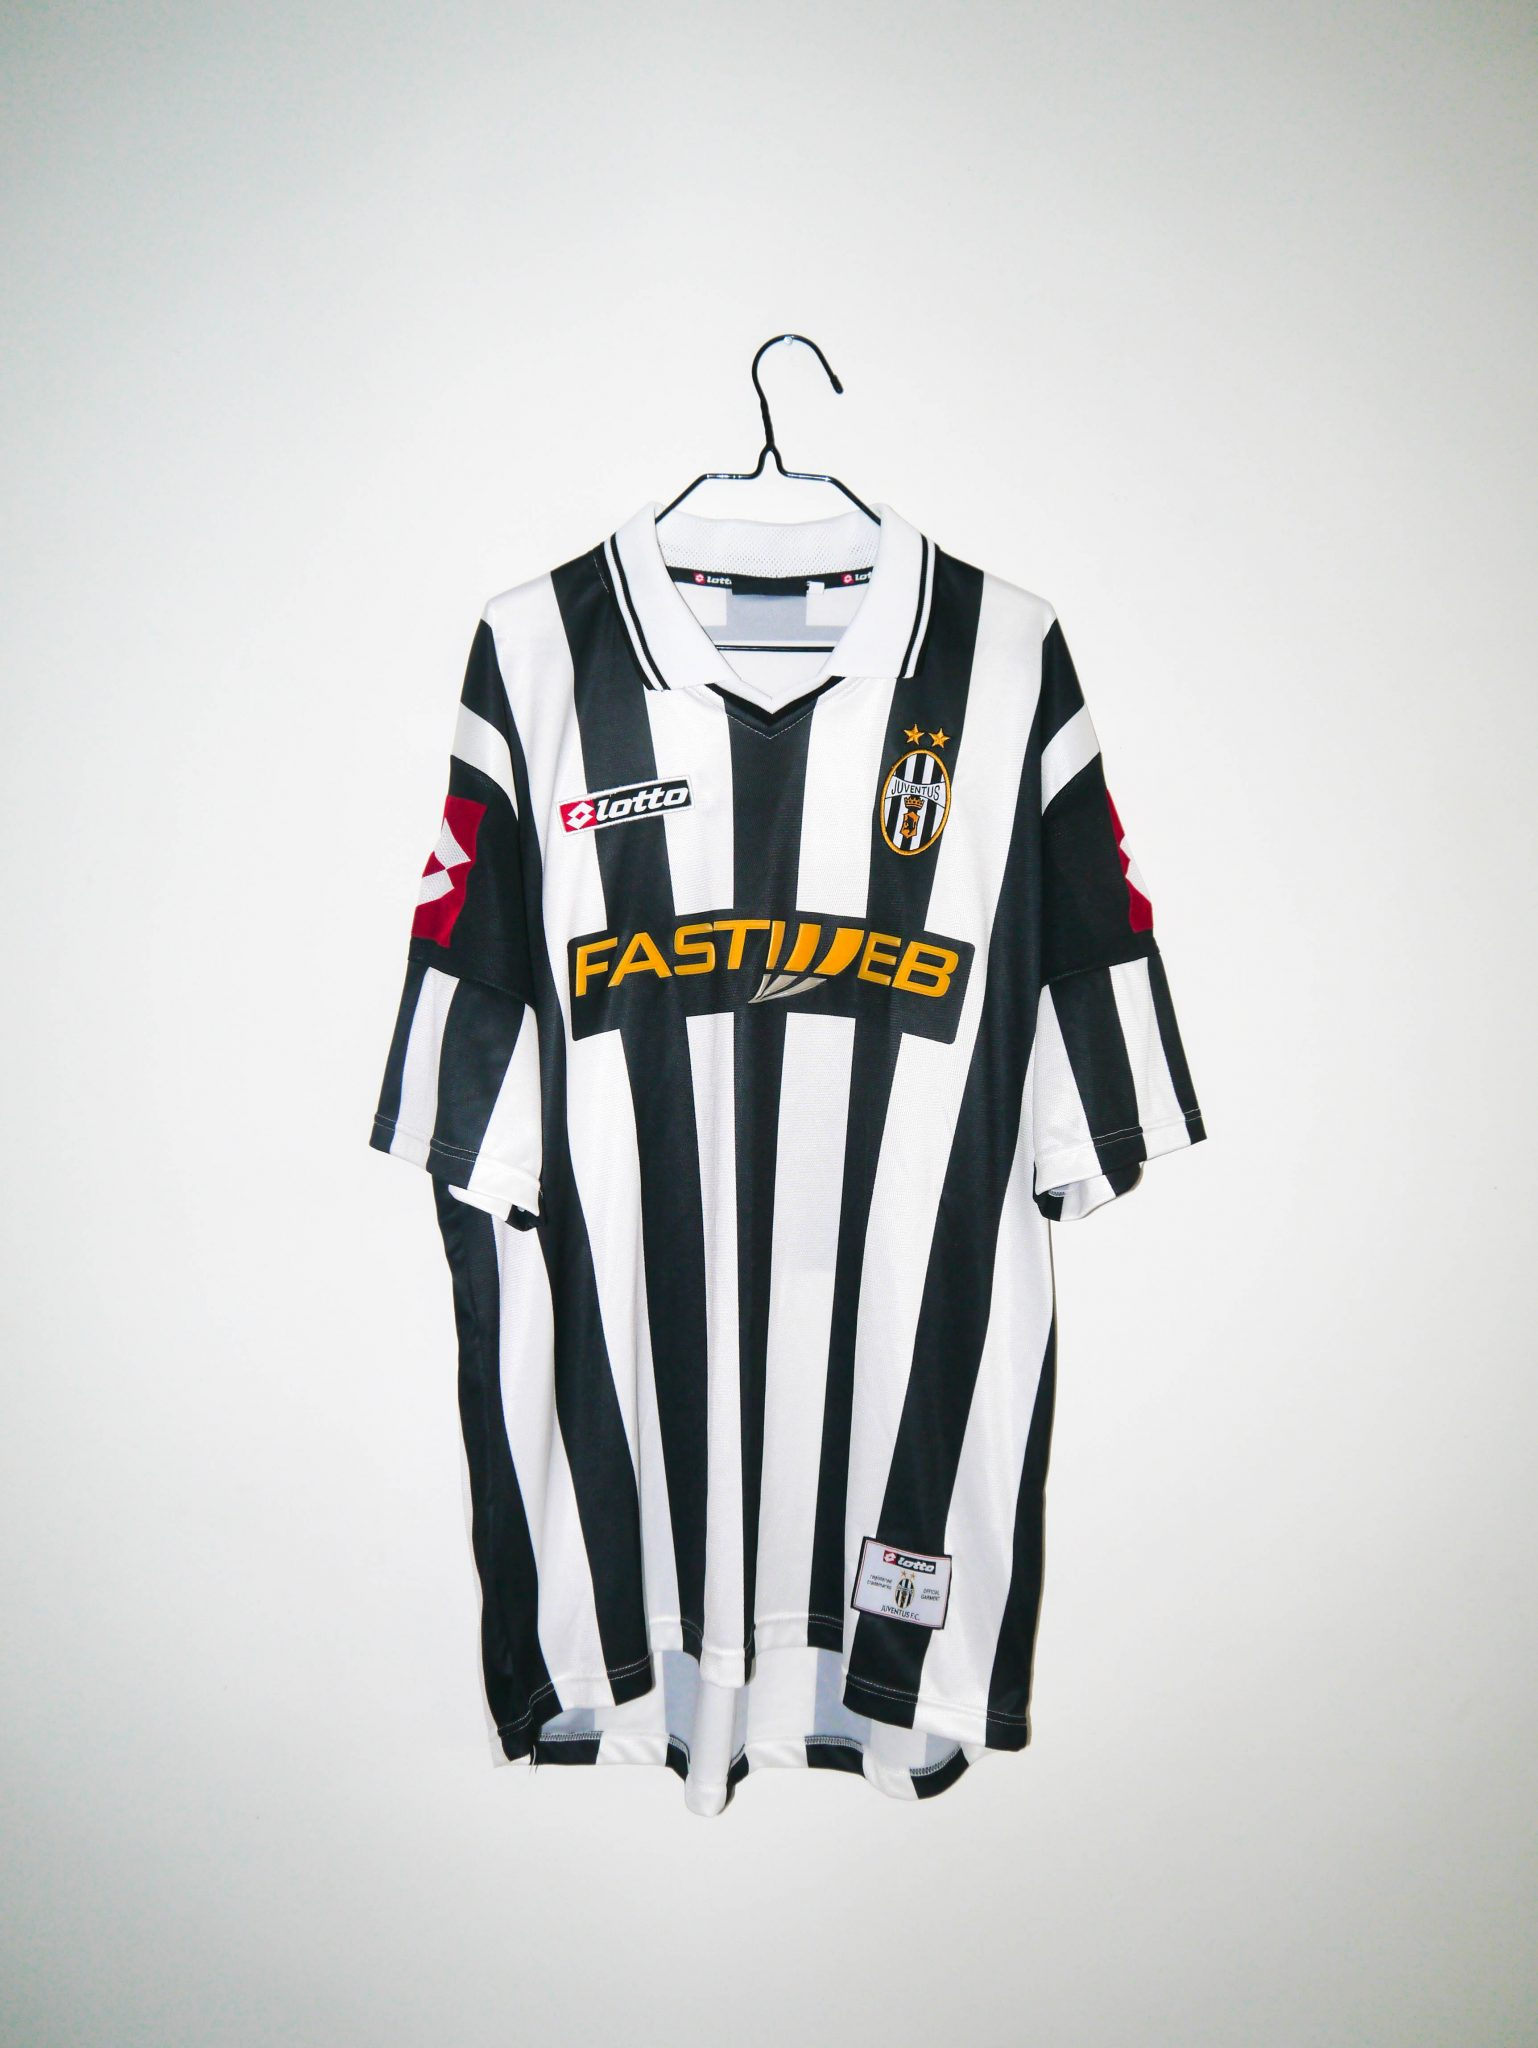 5f840cede32 Home   Shop   Italian Clubs   Juventus   Original 2001-02 Juventus home  jersey -XL